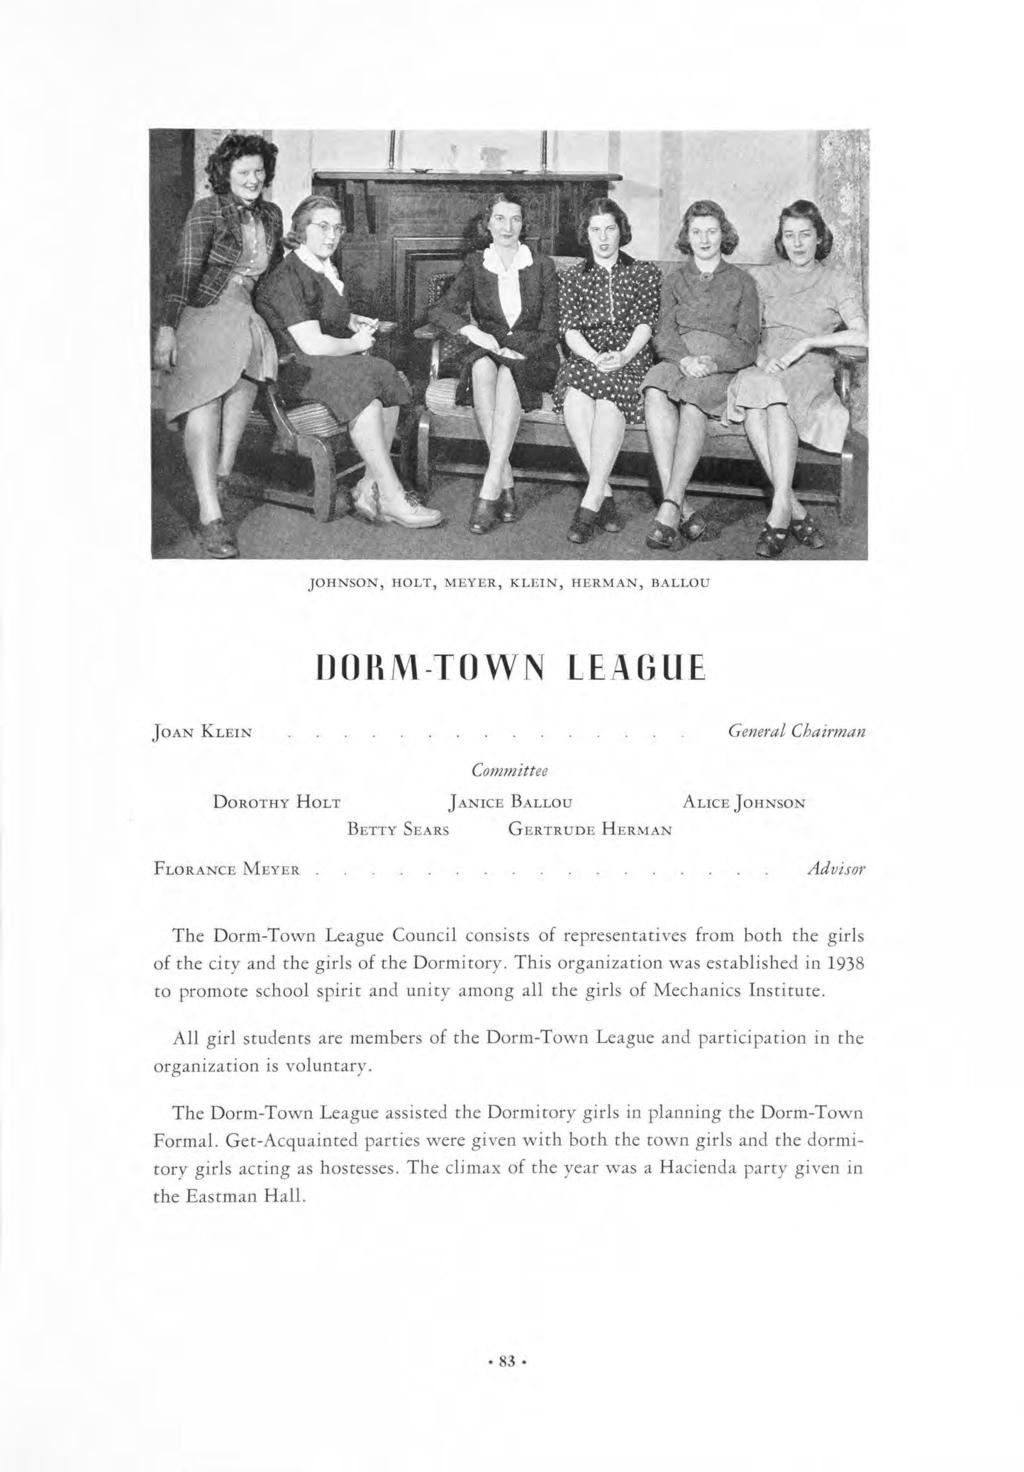 JOHNSON, HOLT, MEYER, KLEIN, HERMAN, BALLOU DORM-TOWN LEAGUE JOAN KLEIN General Chairman Committee DOROTHY HOLT JANICE BALLOU ALICE JOHNSON BETTY SEARS GERTRUDE HERMAN FLORANCE MEYER.